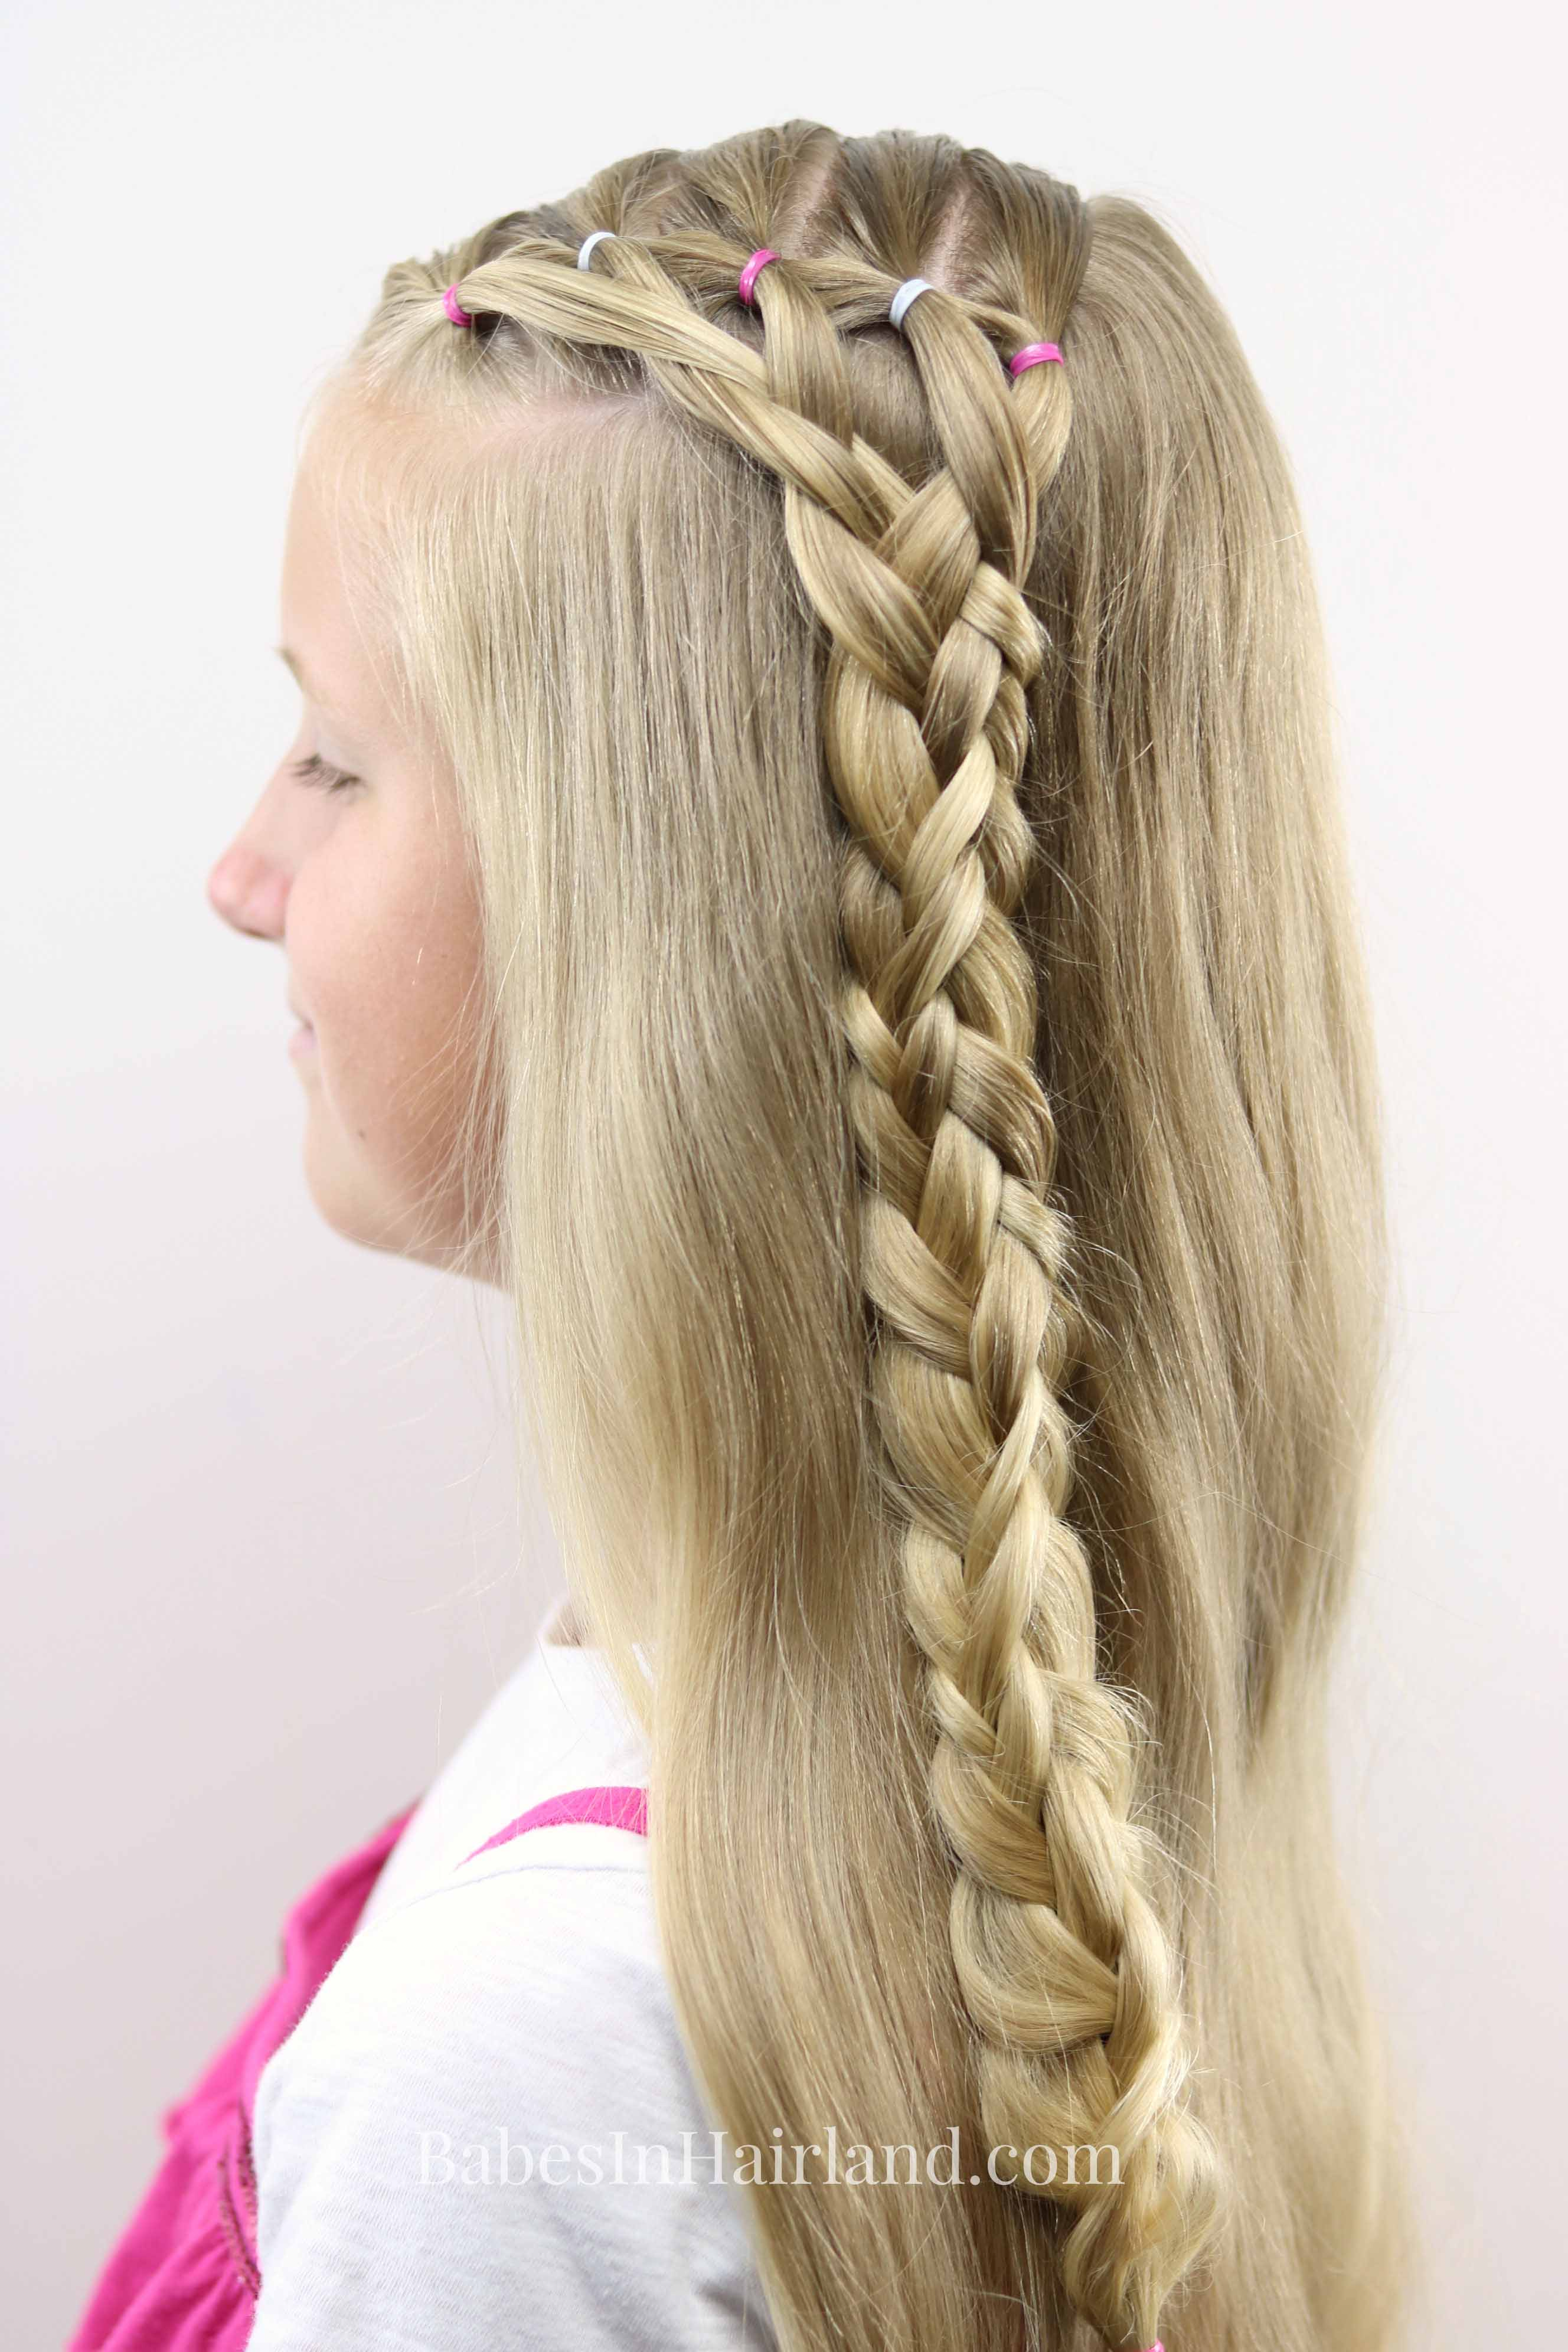 Feathered Ponies And 5 Strand Braid Hairstyle For Girls